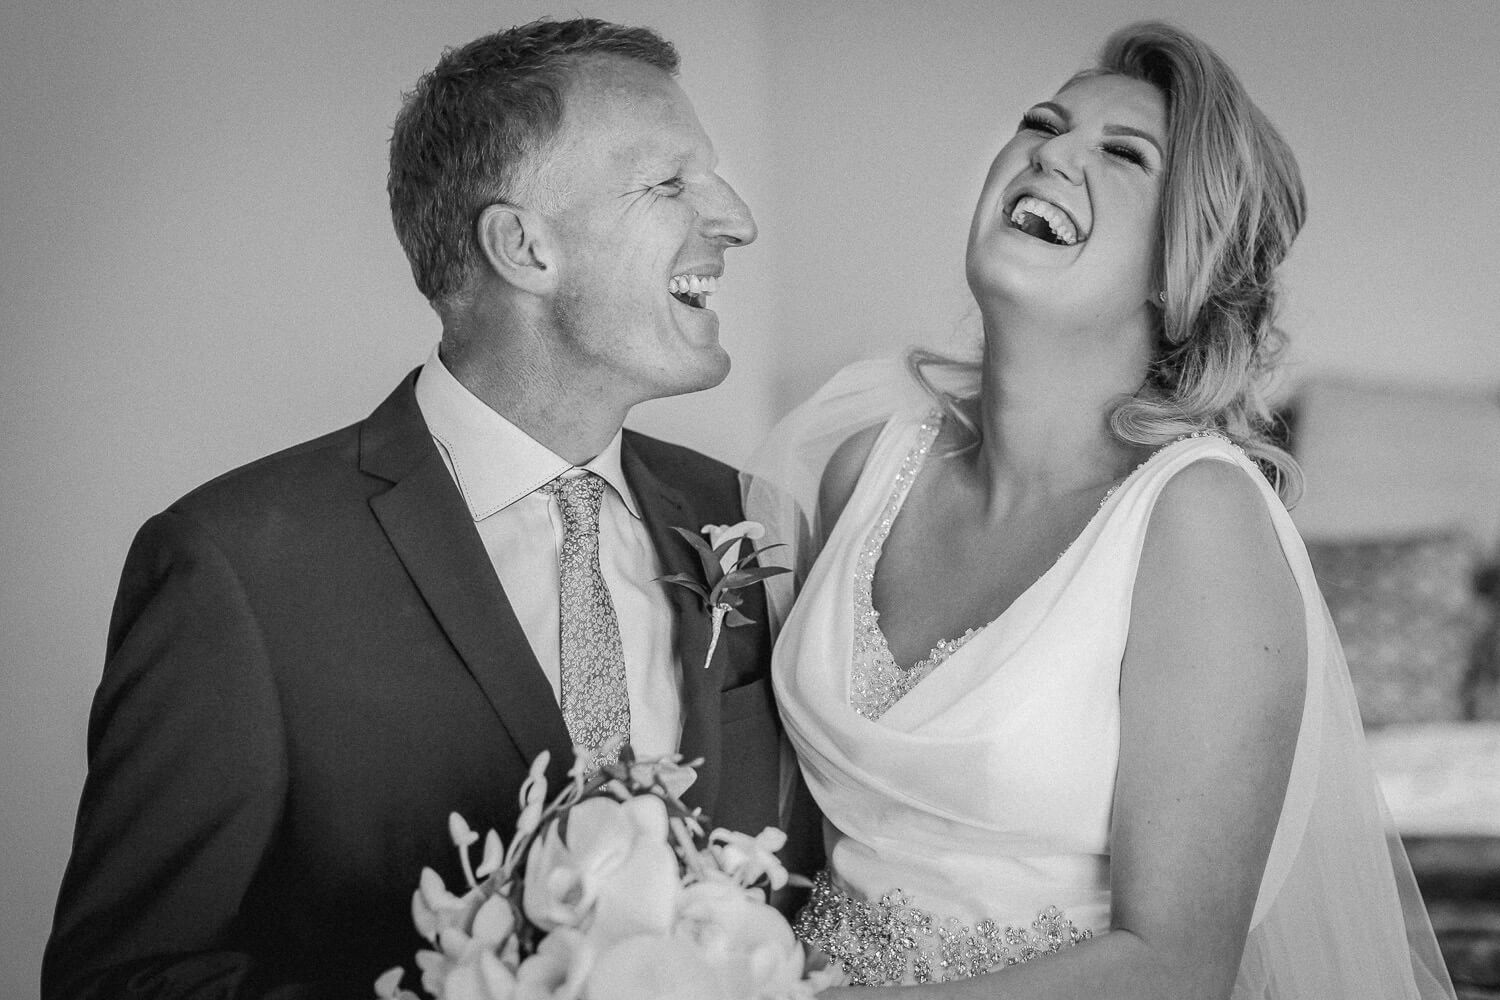 Father of bride and daughter laughing in wedding dress